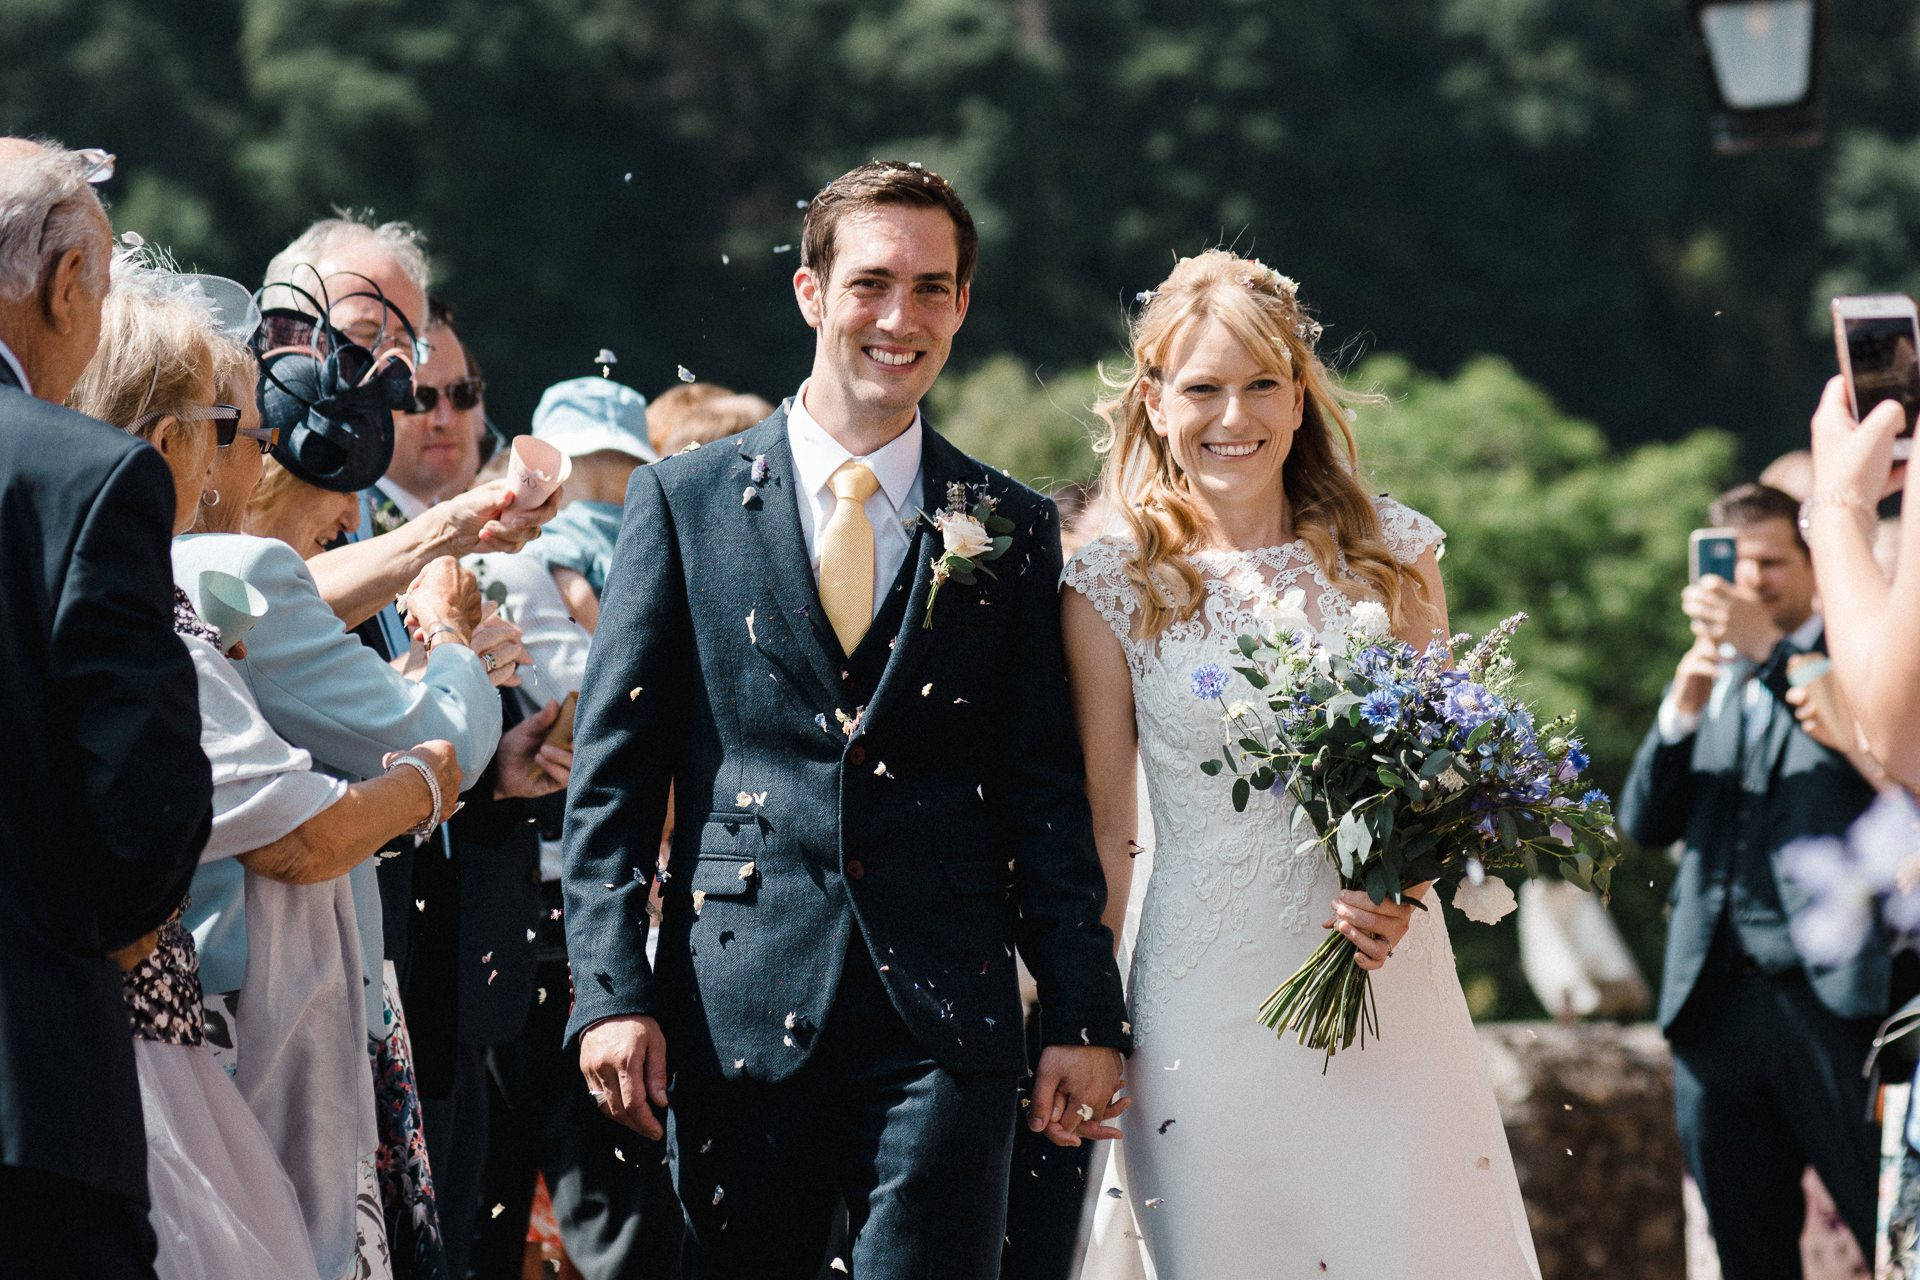 0003-DEVON-SOMERSET-WEDDING-PHOTOGRAPHER-0032-BEST-OF-2019-LOUISE-MAY-DEVON-SOMERSET-WEDDING-PHOTOGRAPHY-LMP_6383